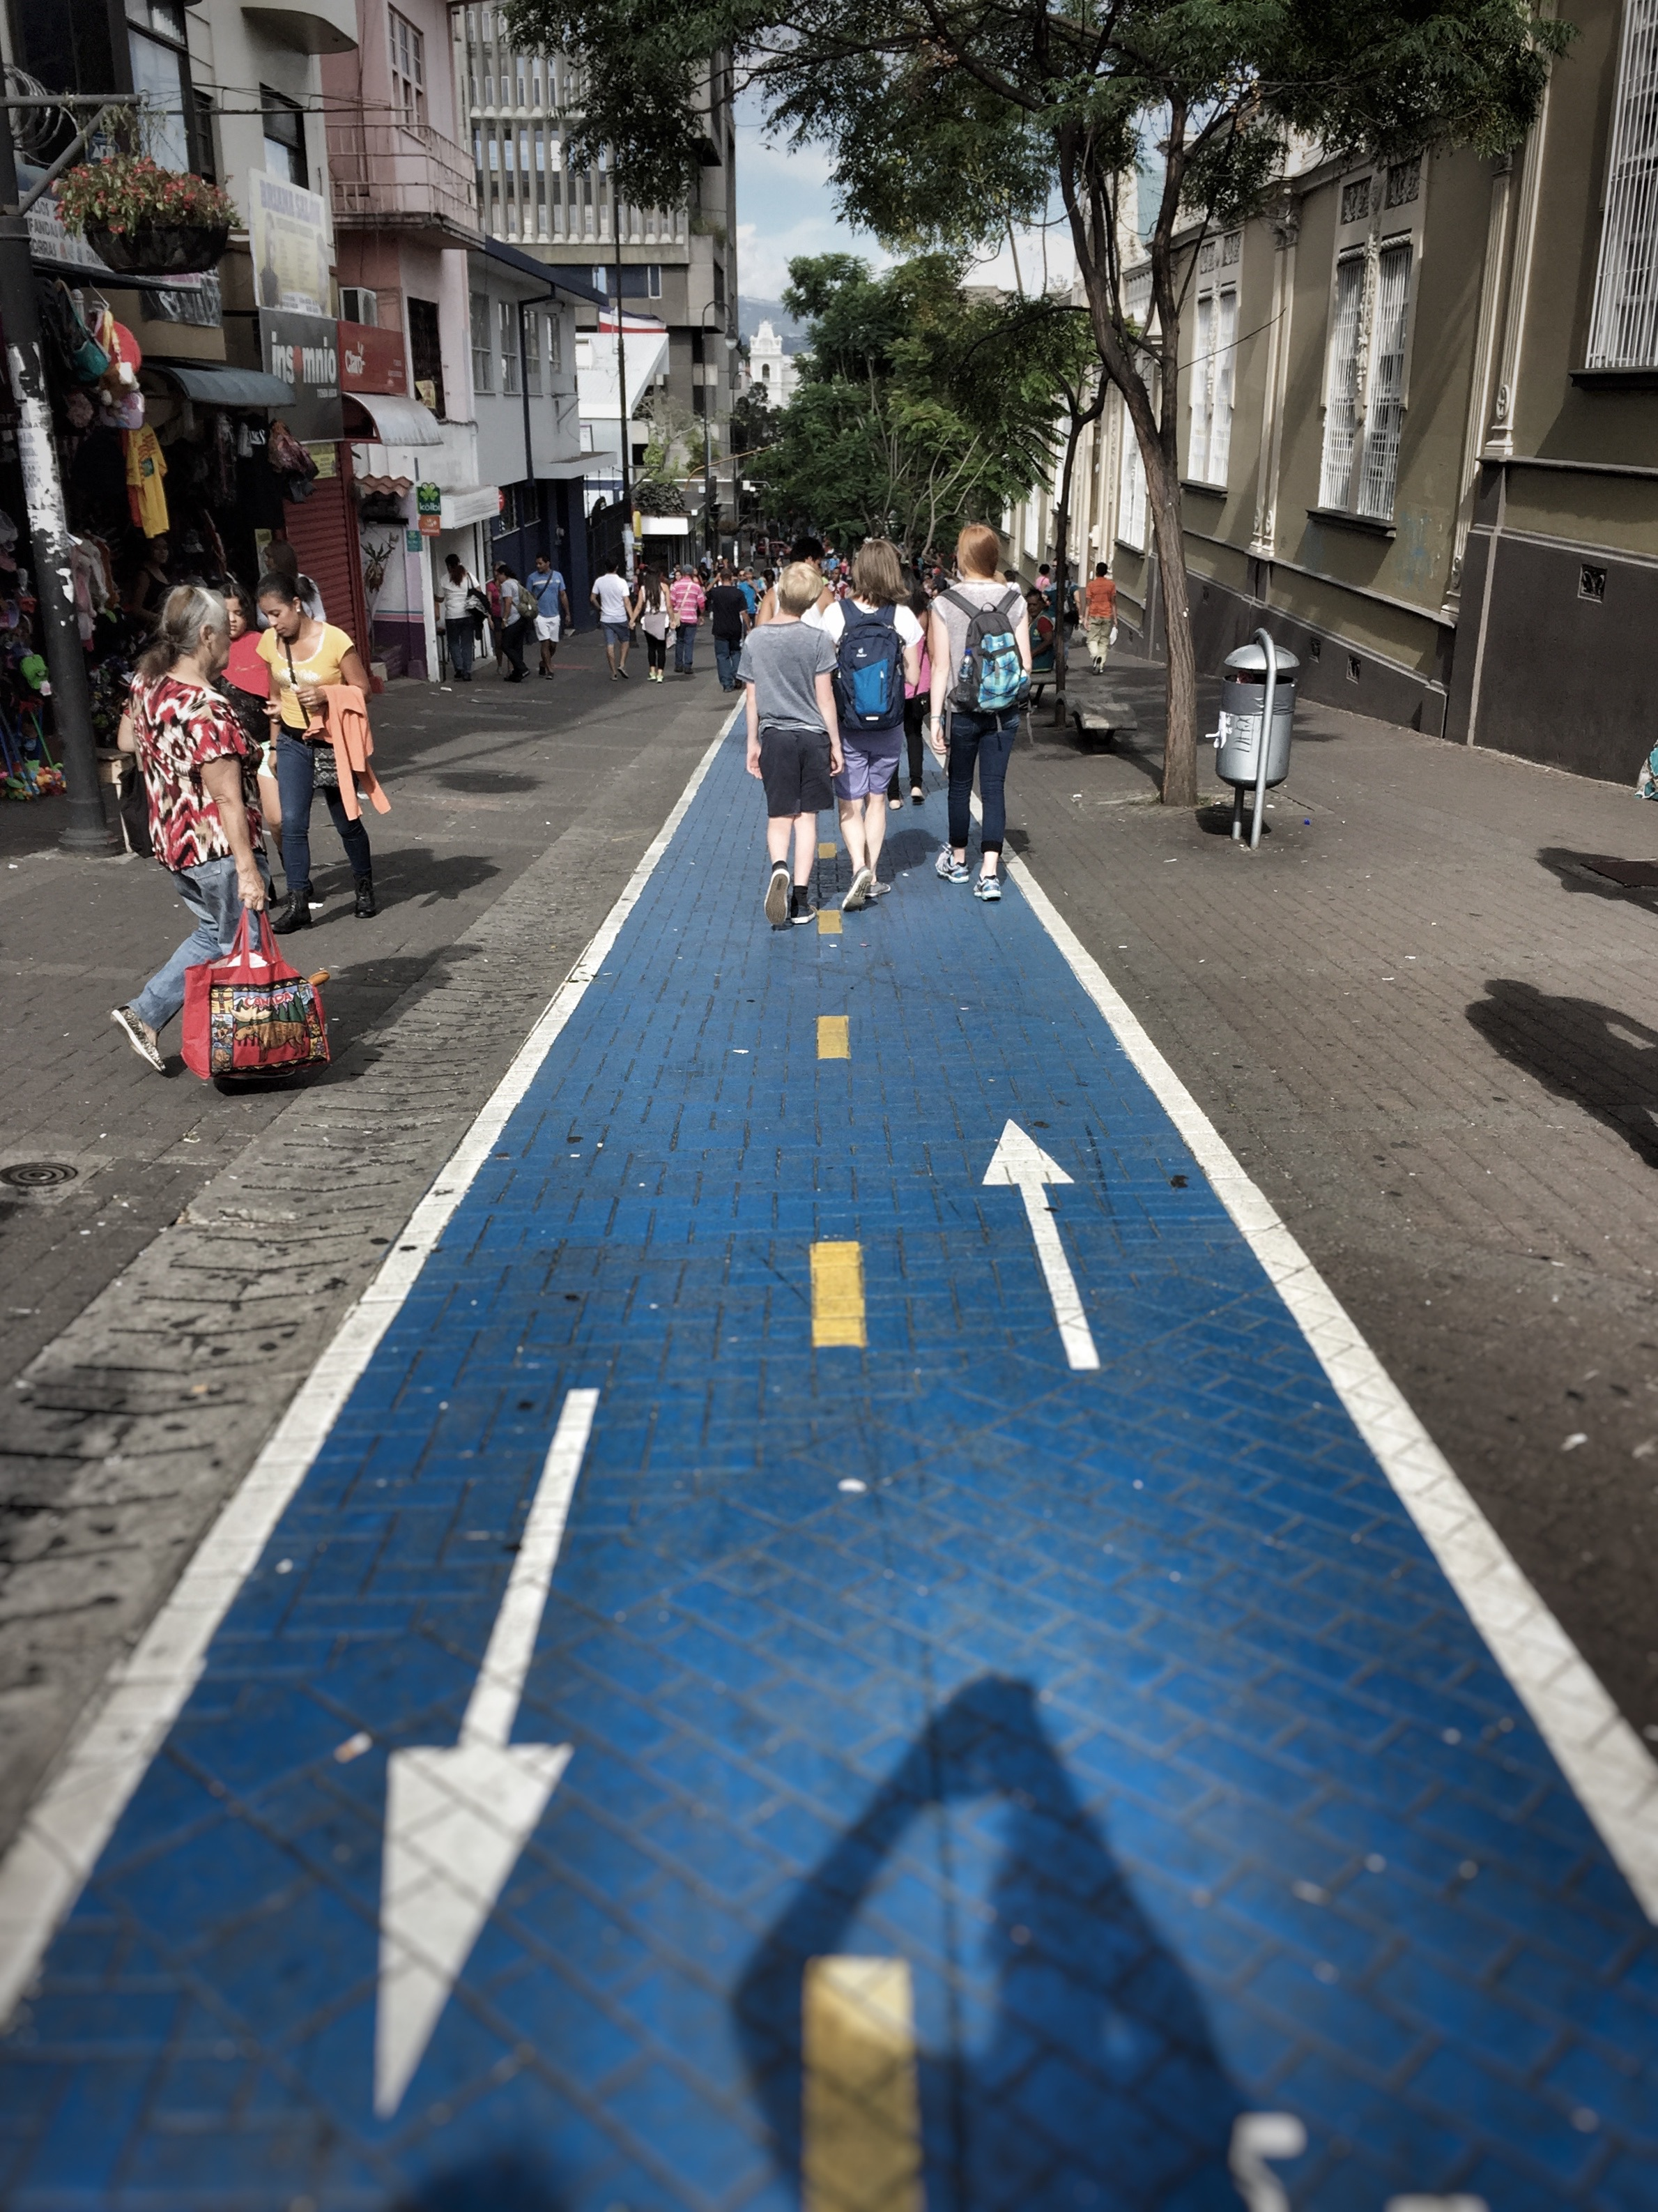 Blue bike lanes? Are they nuts?